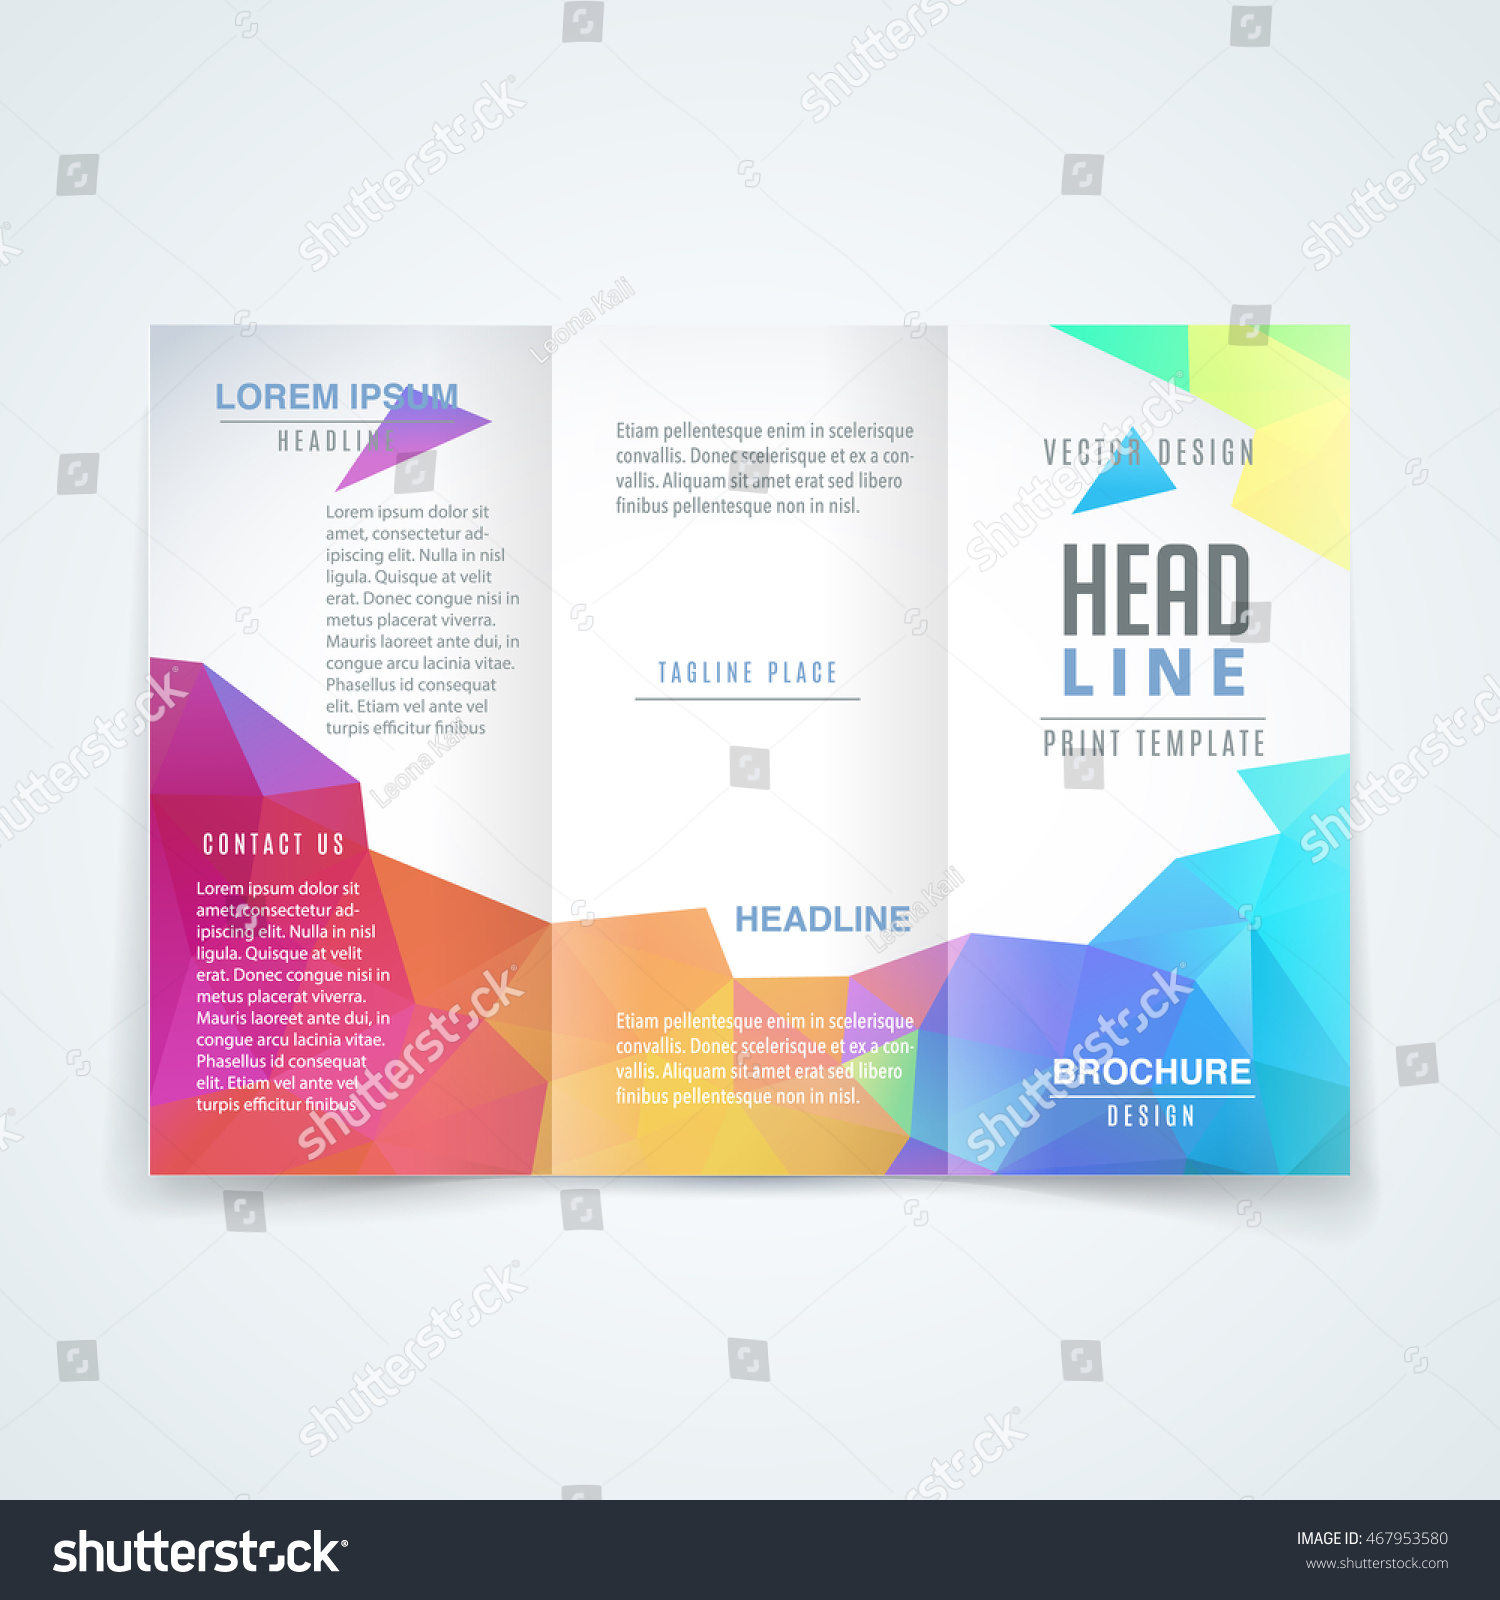 template of brochure - best brochure design lx91 regardsdefemmes